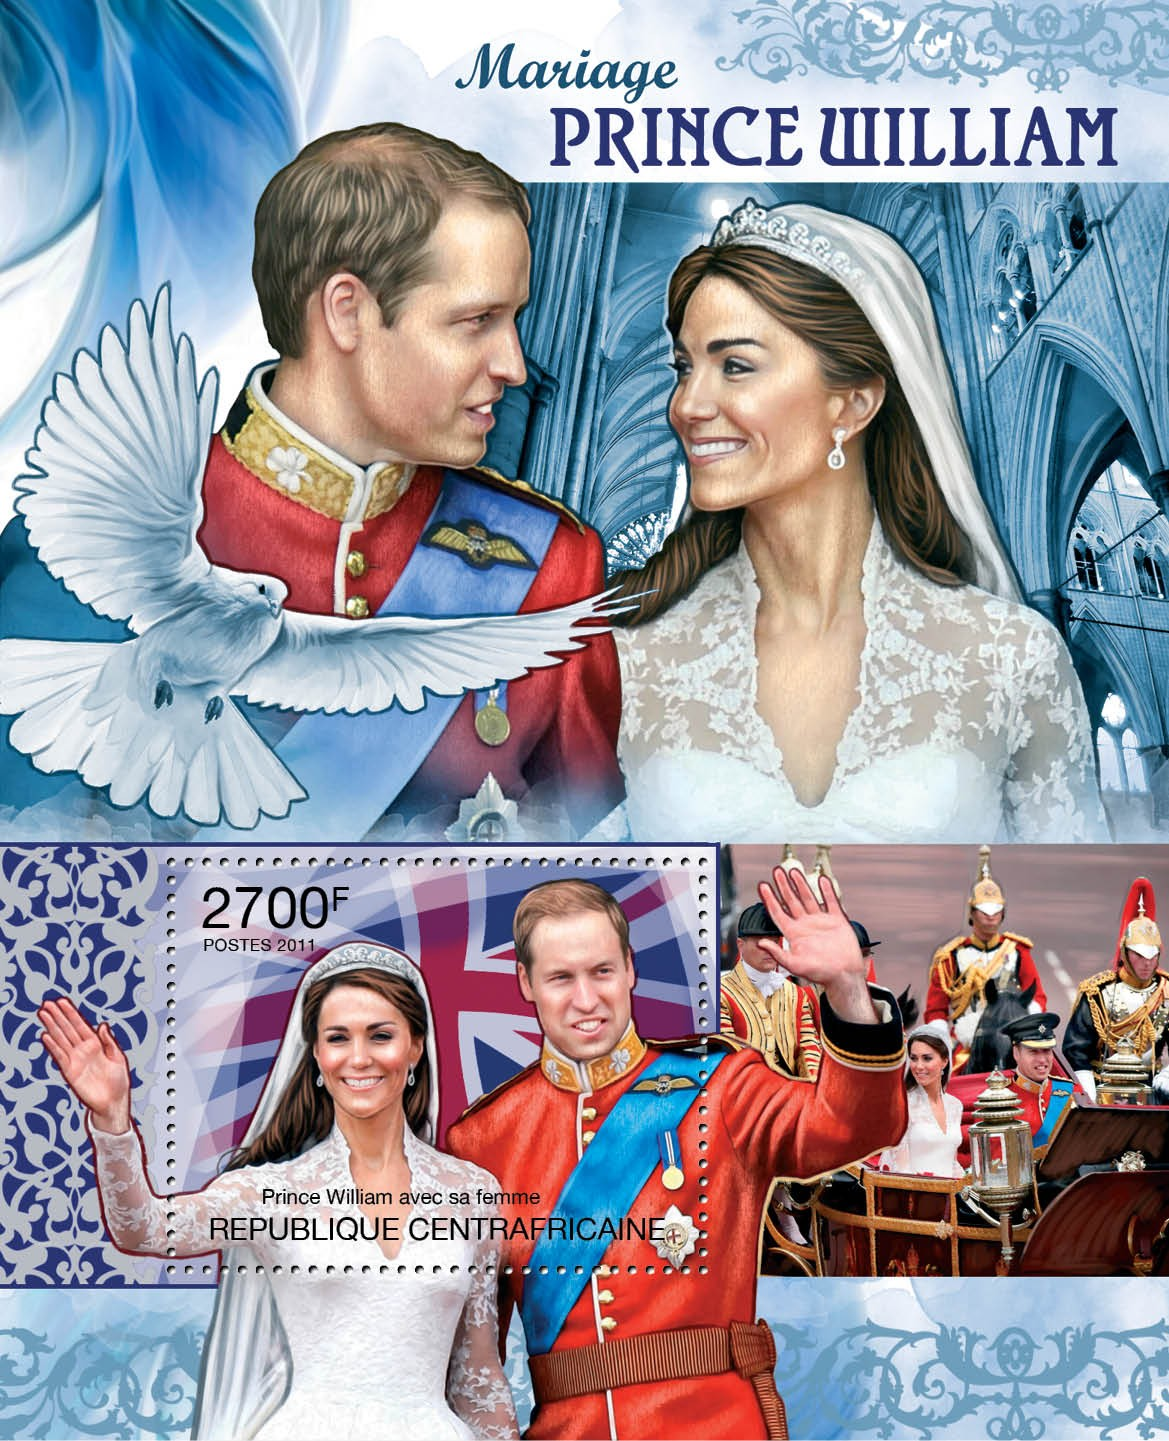 Royal Wedding, Prince William & Katherine Middleton. - Issue of Central African republic postage stamps